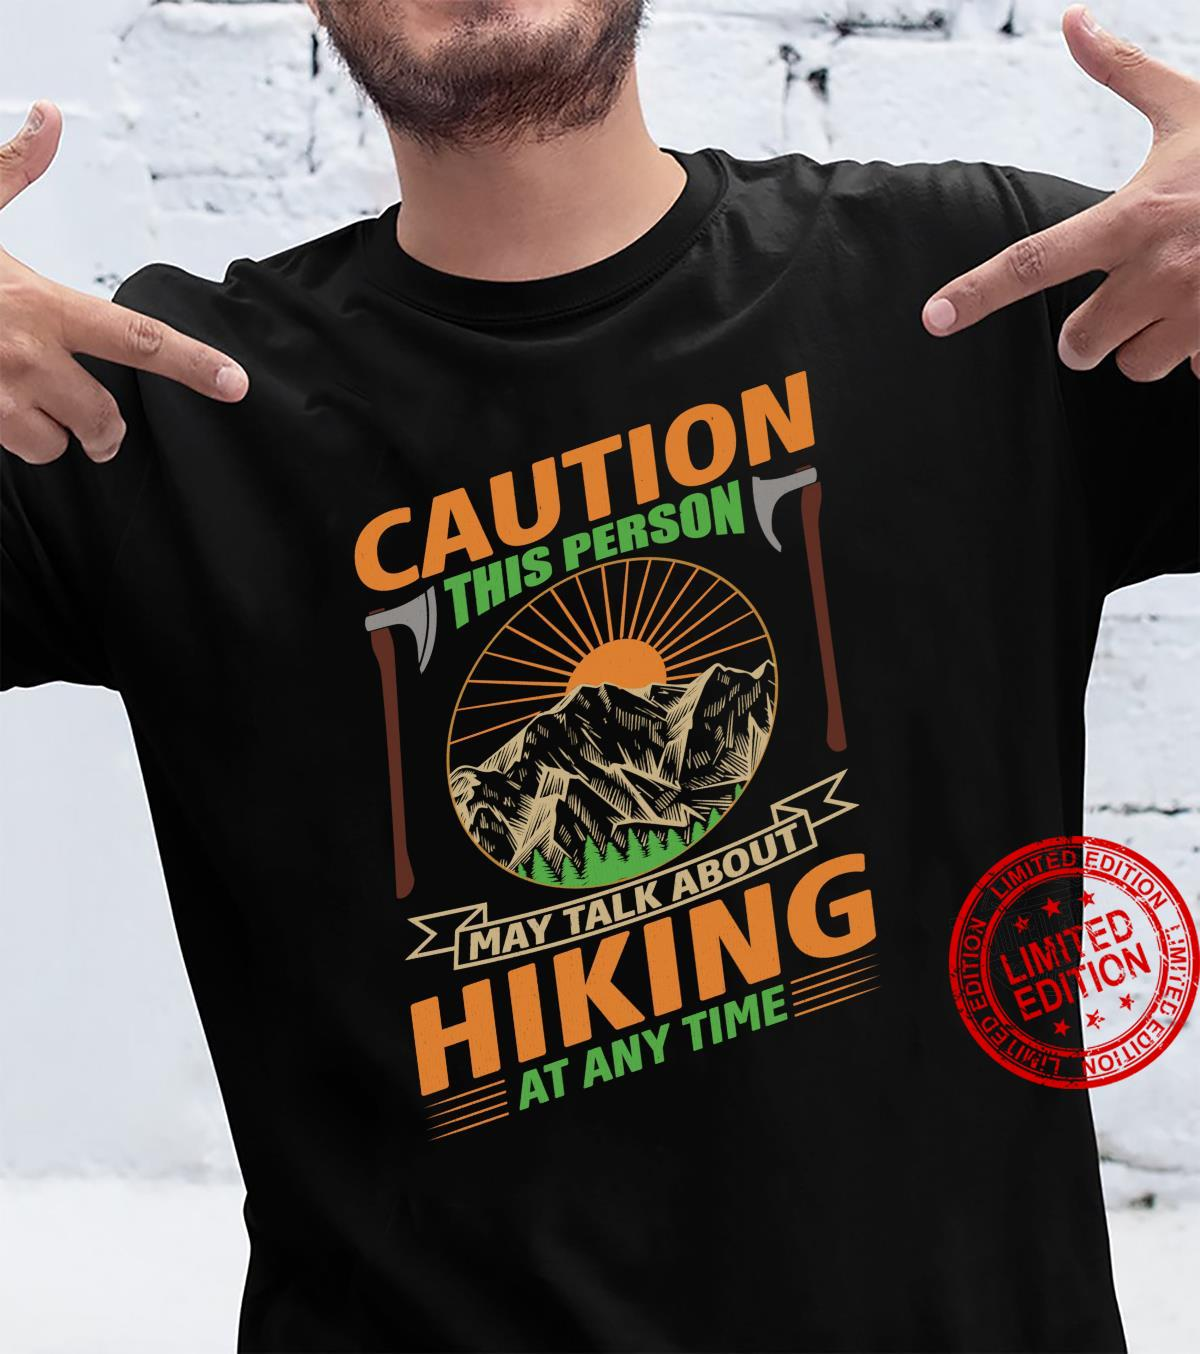 Caution This Person May Talk About Hiking At Any Time Shirt